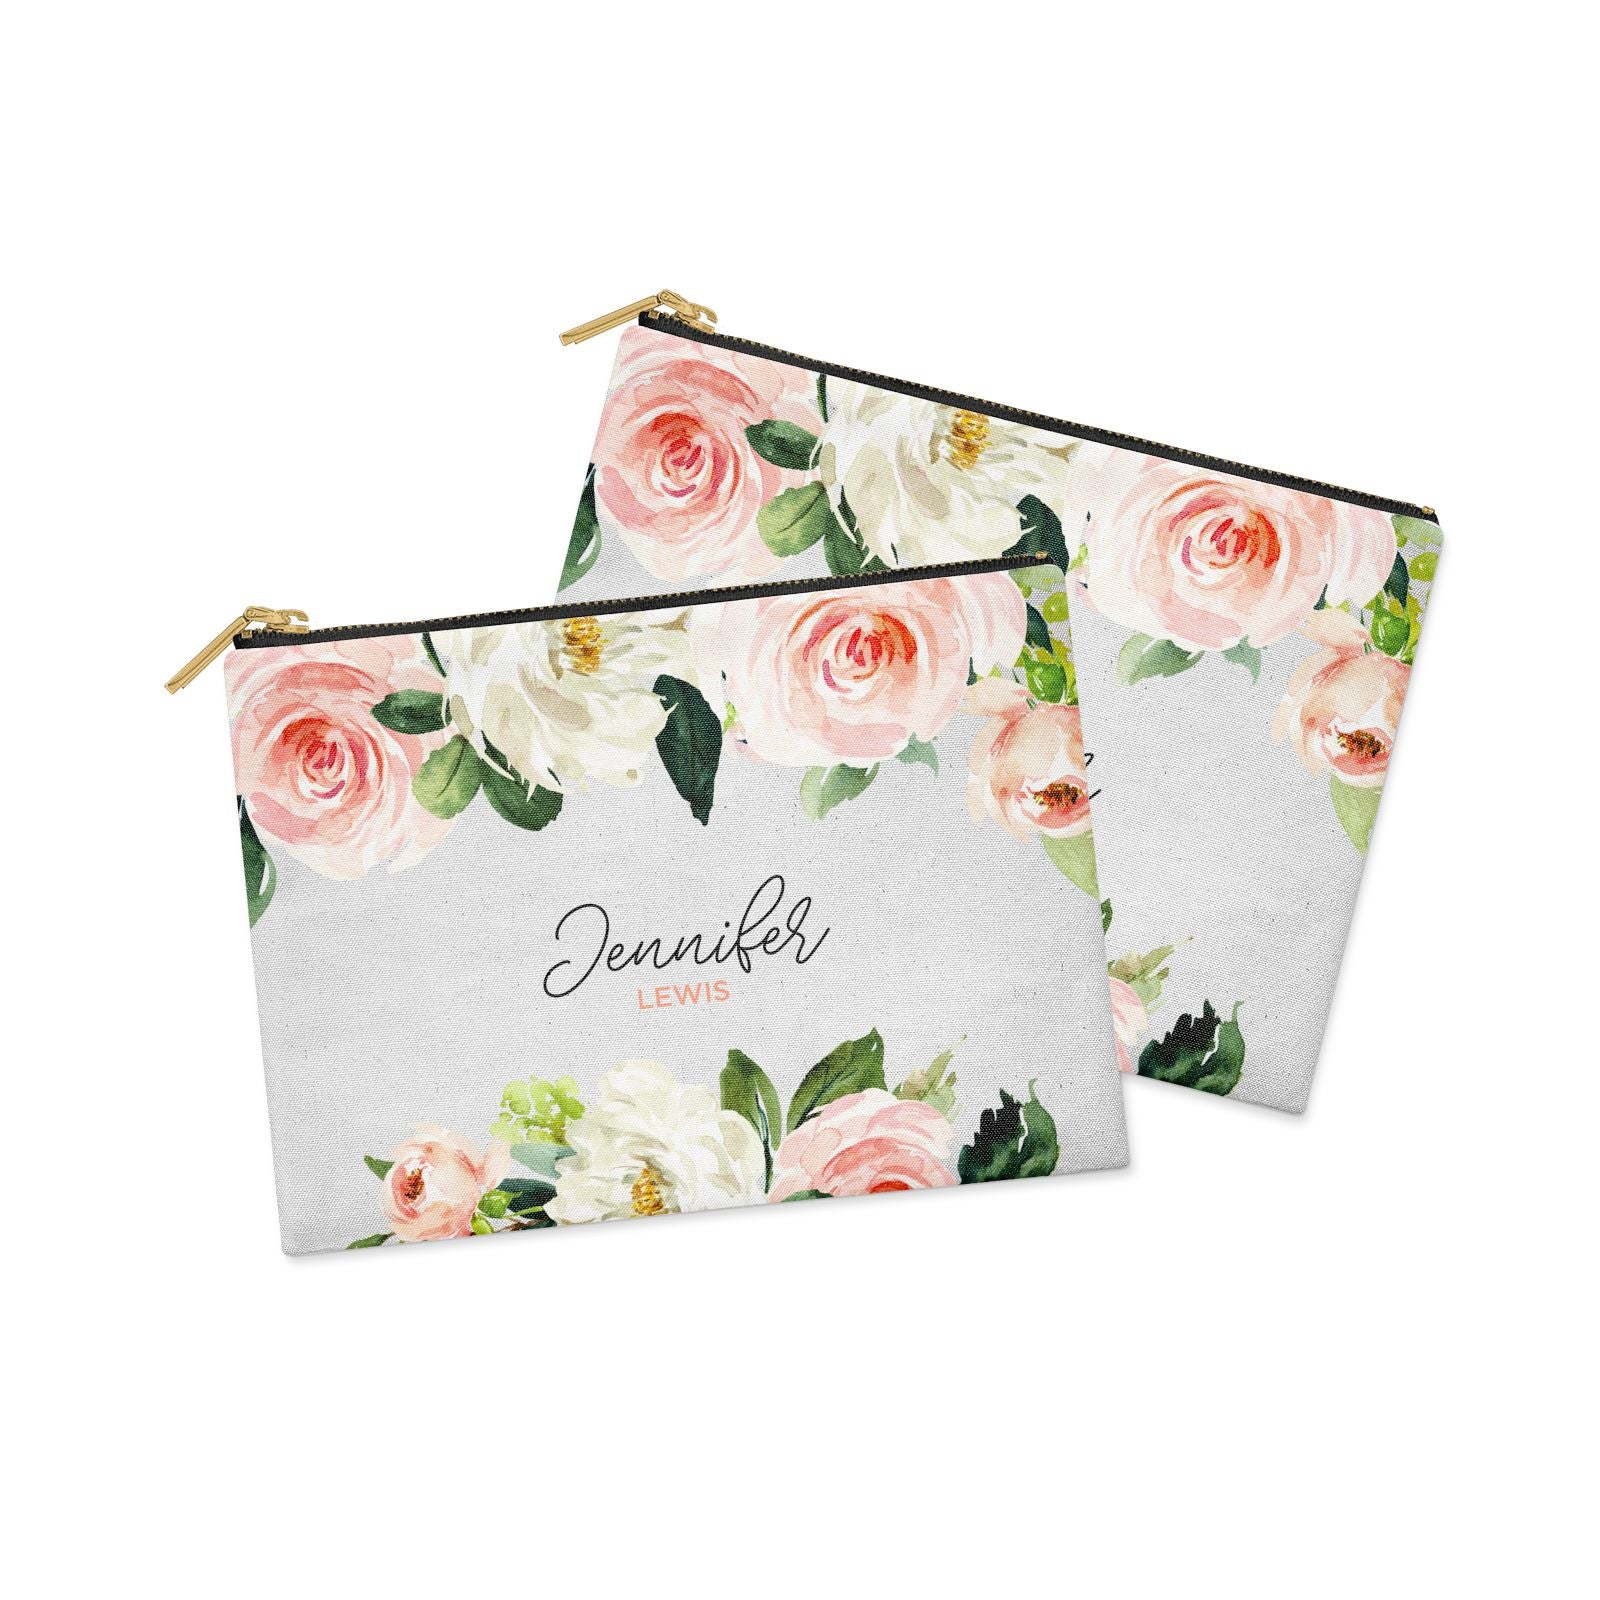 Bunches of Roses Personalised Names Clutch Bag Zipper Pouch Alternative View